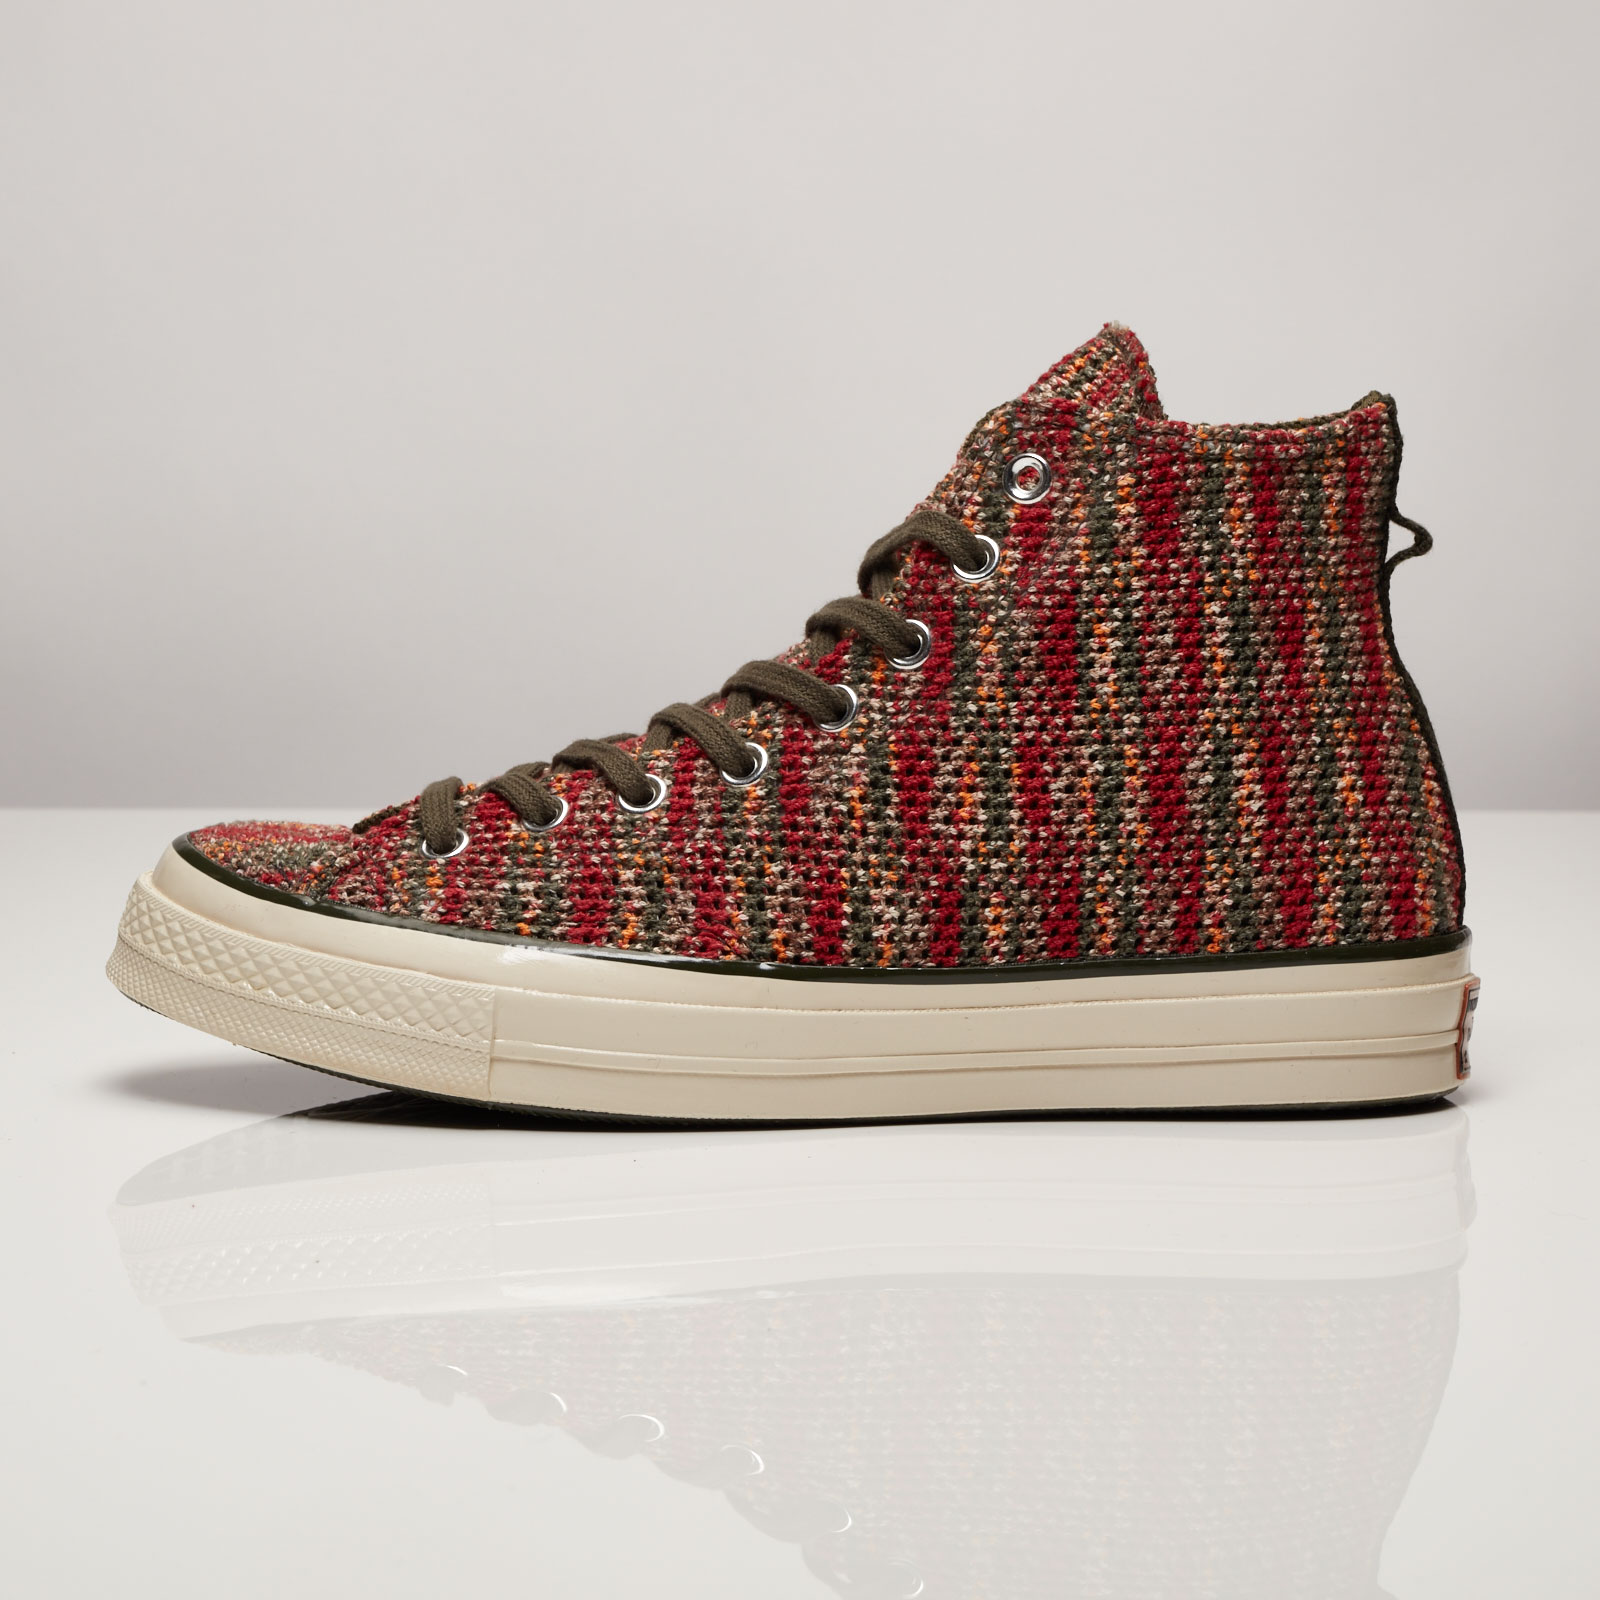 fbd8cd0d51 Converse Chuck Taylor All Star Missoni Hi - 153105c - Sneakersnstuff ...